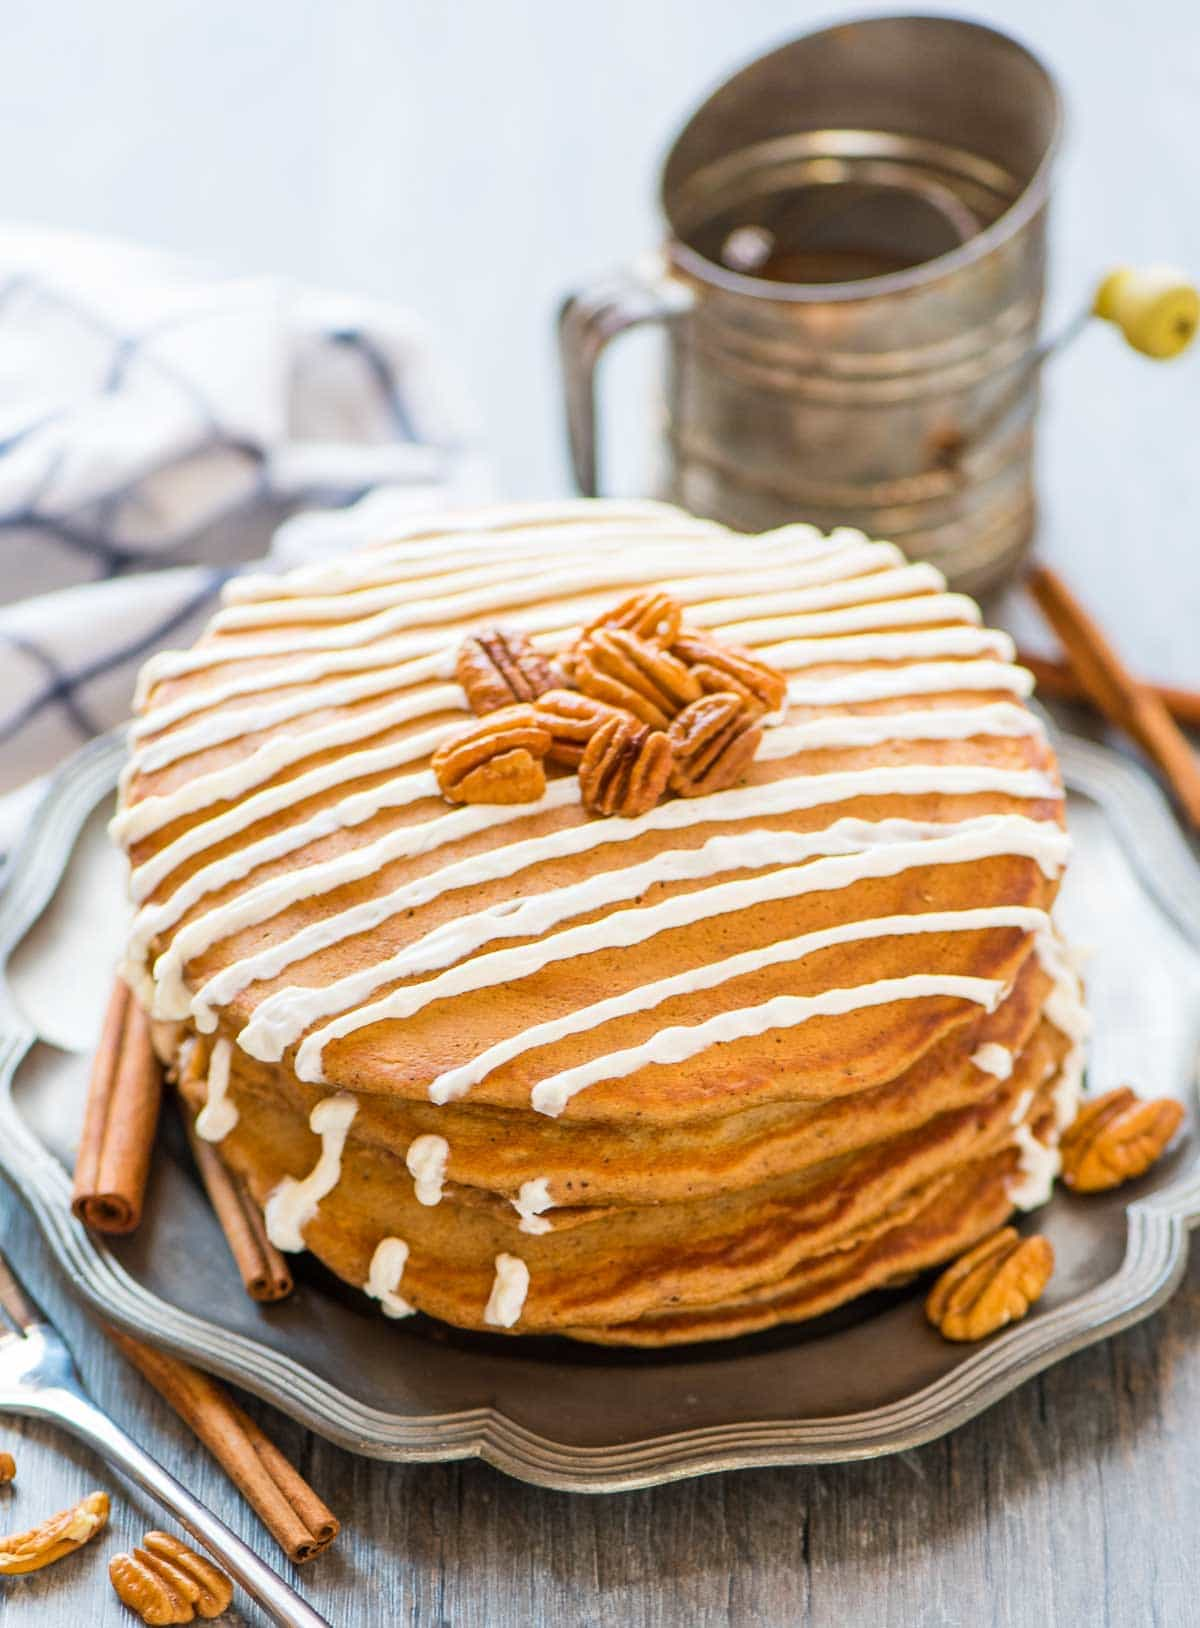 Light and fluffy Gingerbread Pancakes with Maple Cream Cheese Topping. The BEST Christmas breakfast! Easy recipe made without molasses. Recipe at wellplated.com | @wellplated